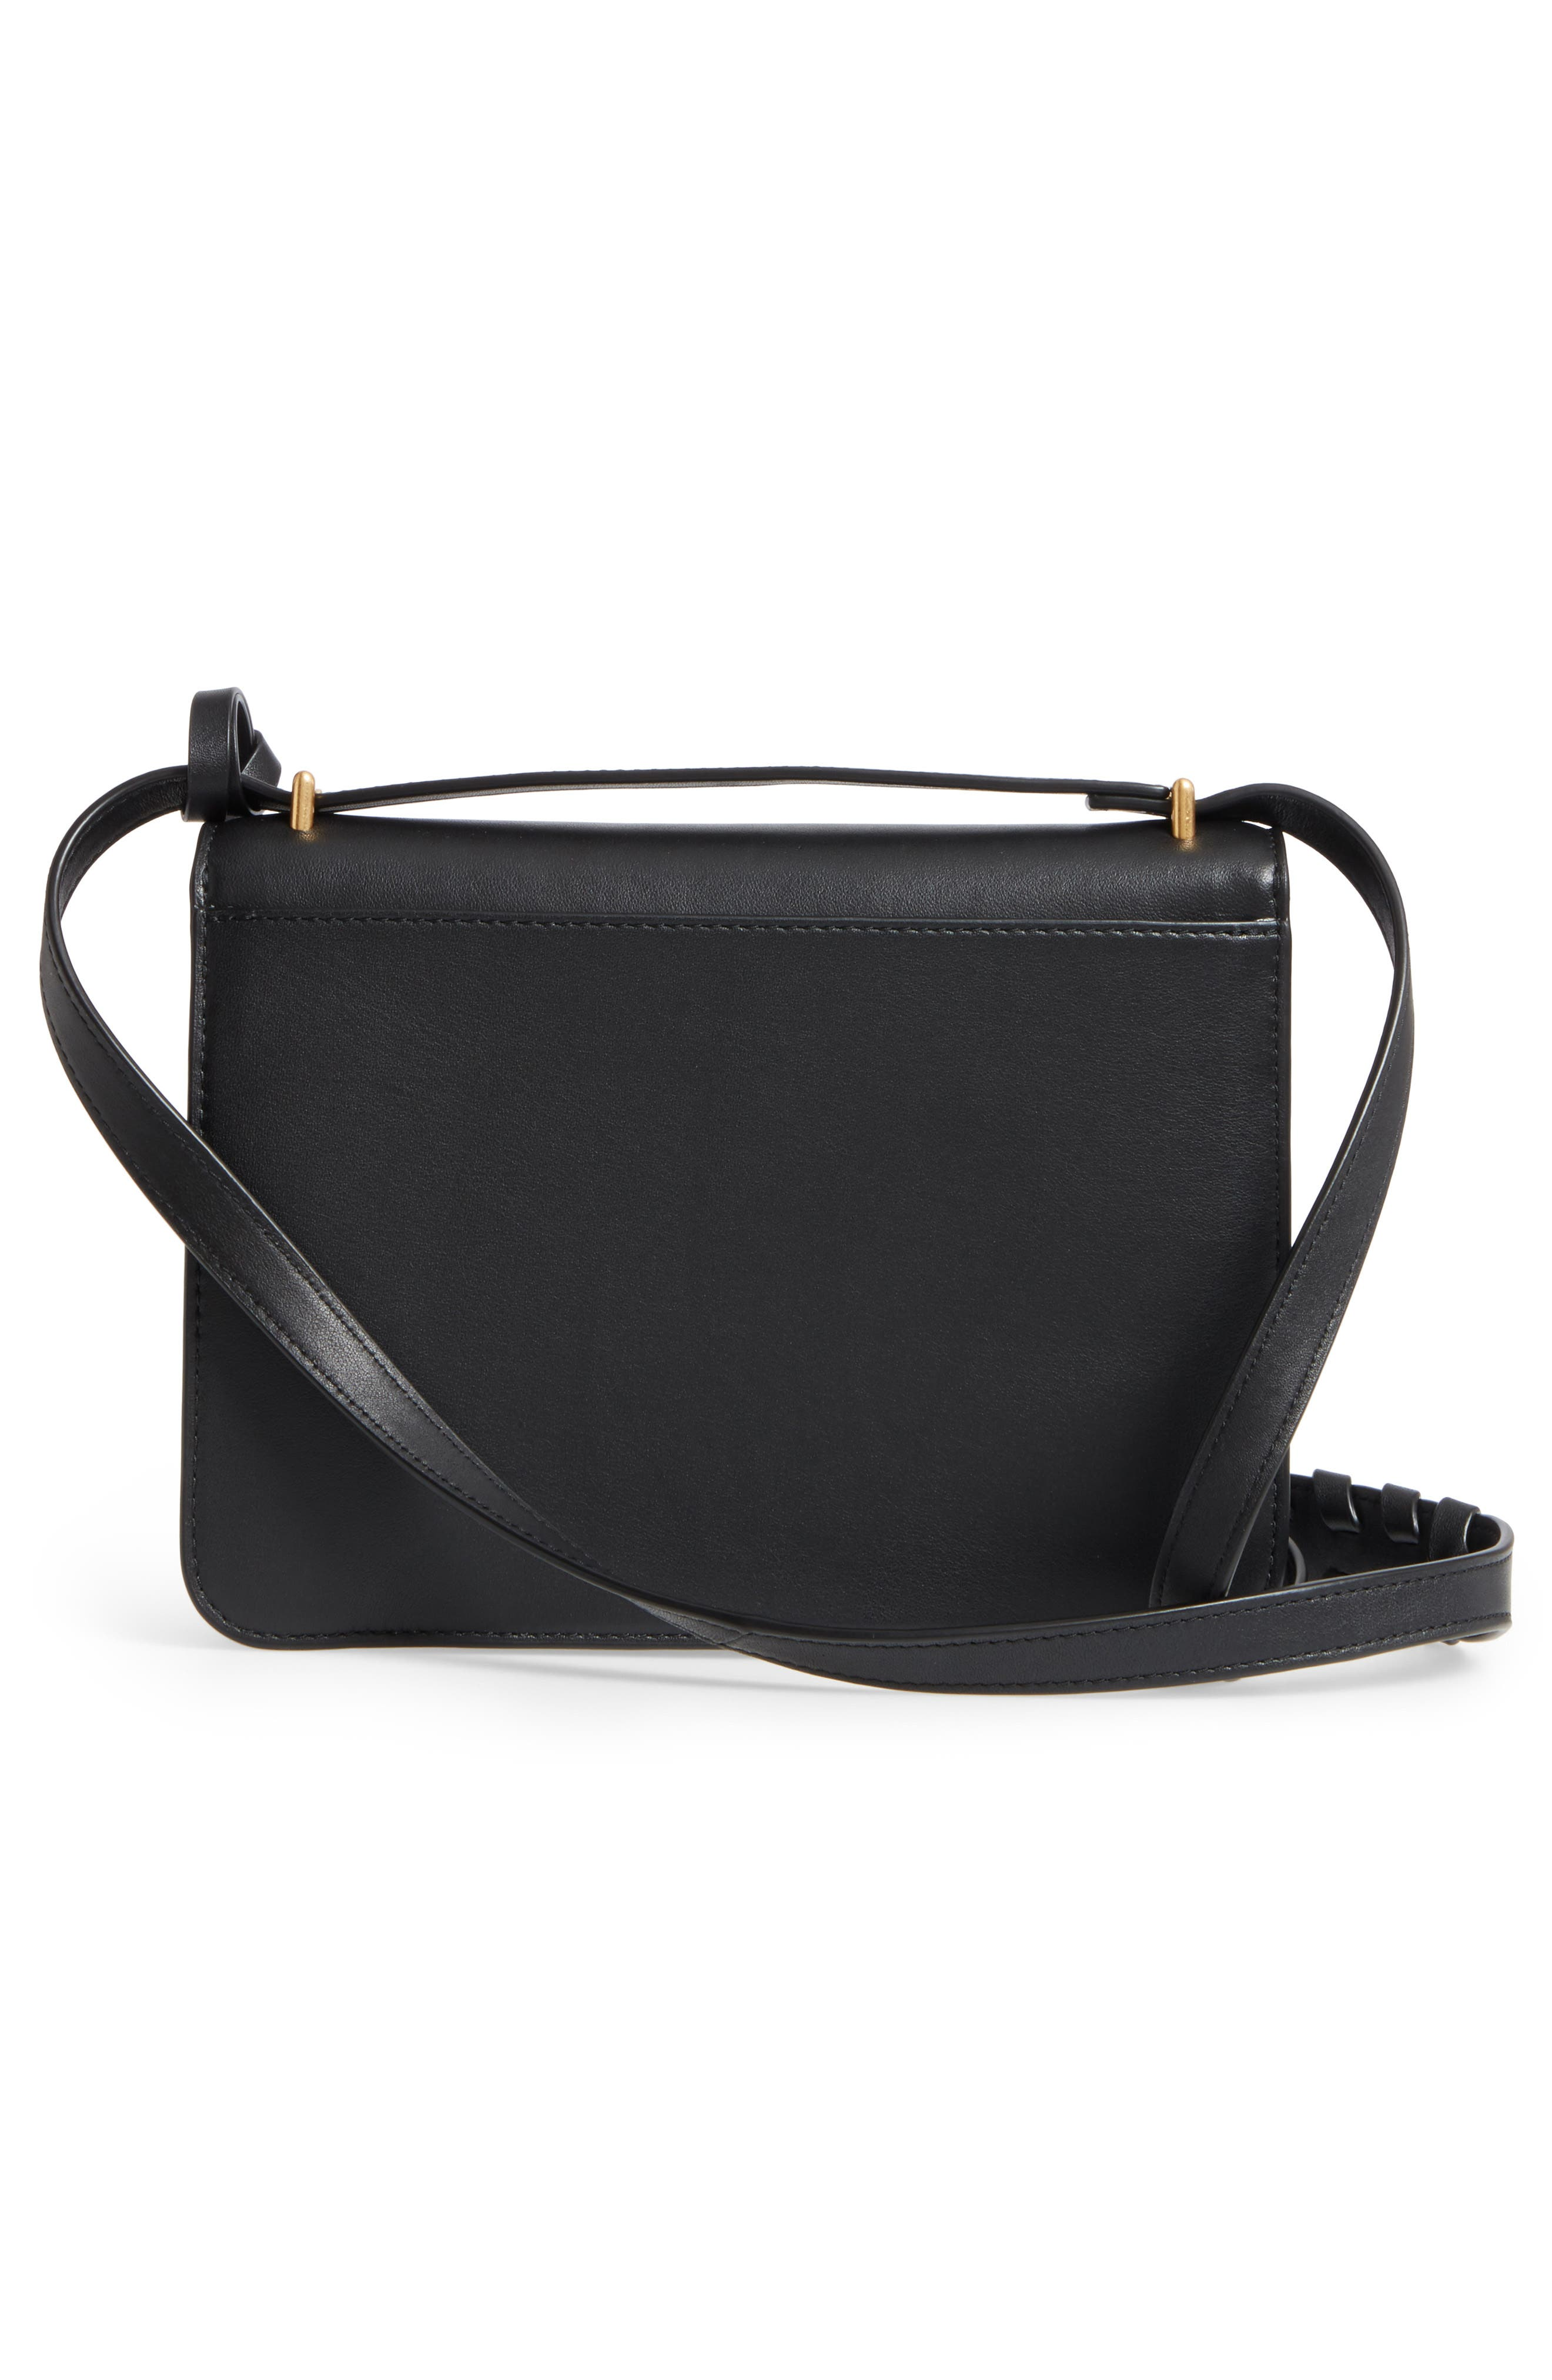 Brooke Leather Crossbody Bag,                             Alternate thumbnail 3, color,                             001